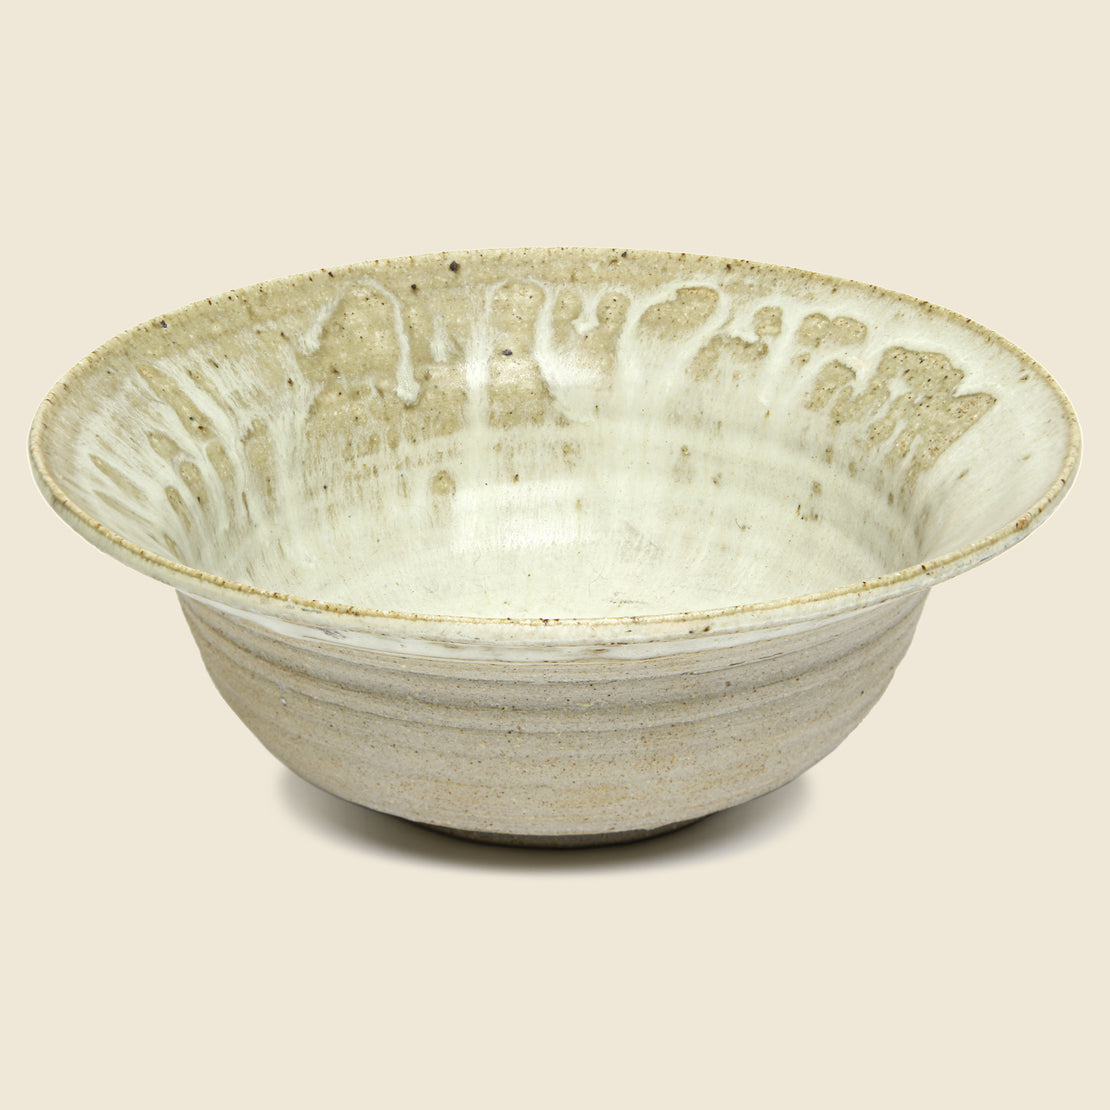 Art Gallery Mid-Century Hand Thrown Studio Pottery - Medium Bowl